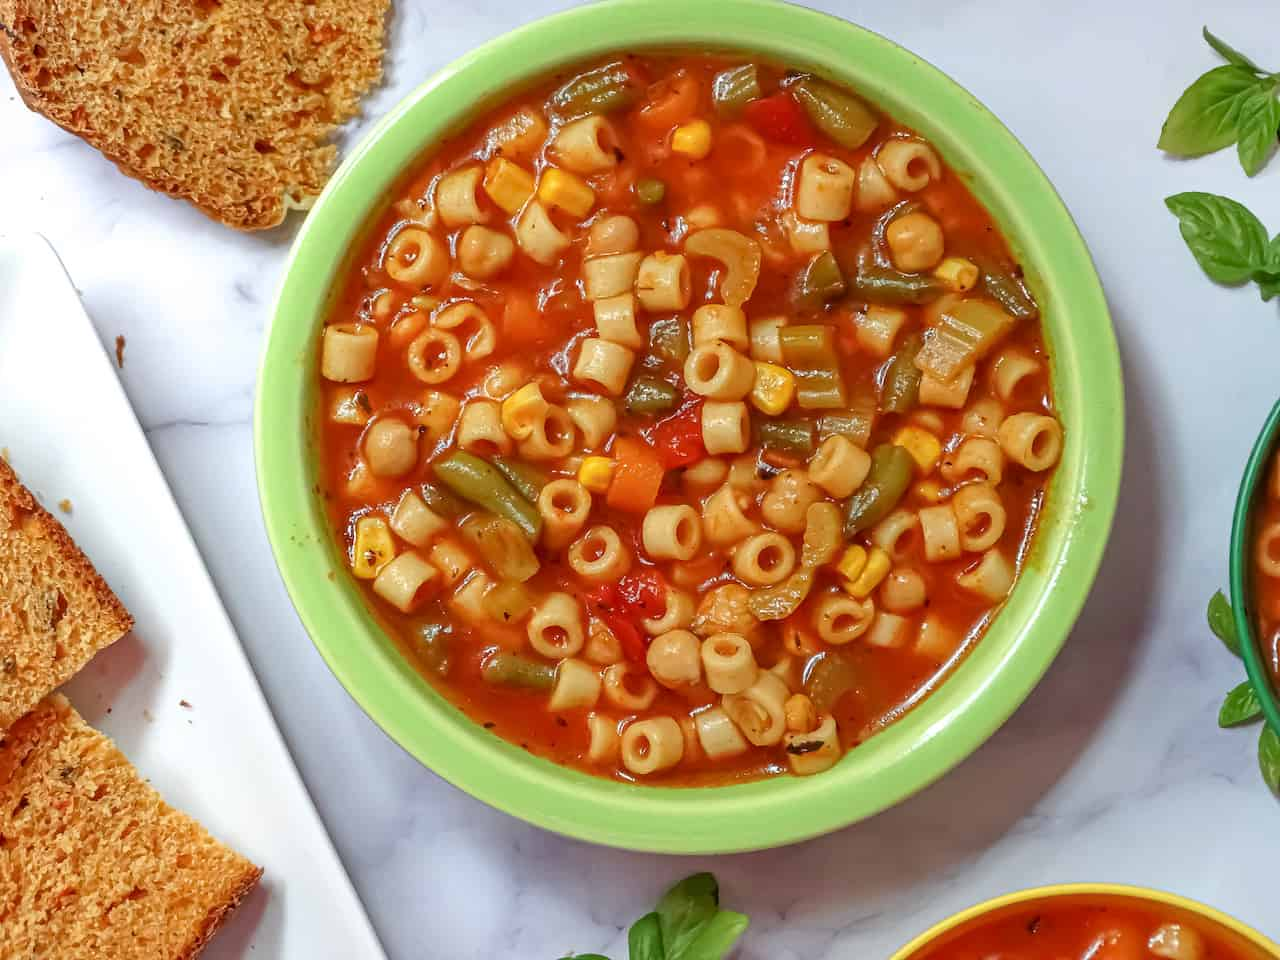 instant pot vegetable soup in a green adult bowl served with tomato  basil bread on a white background